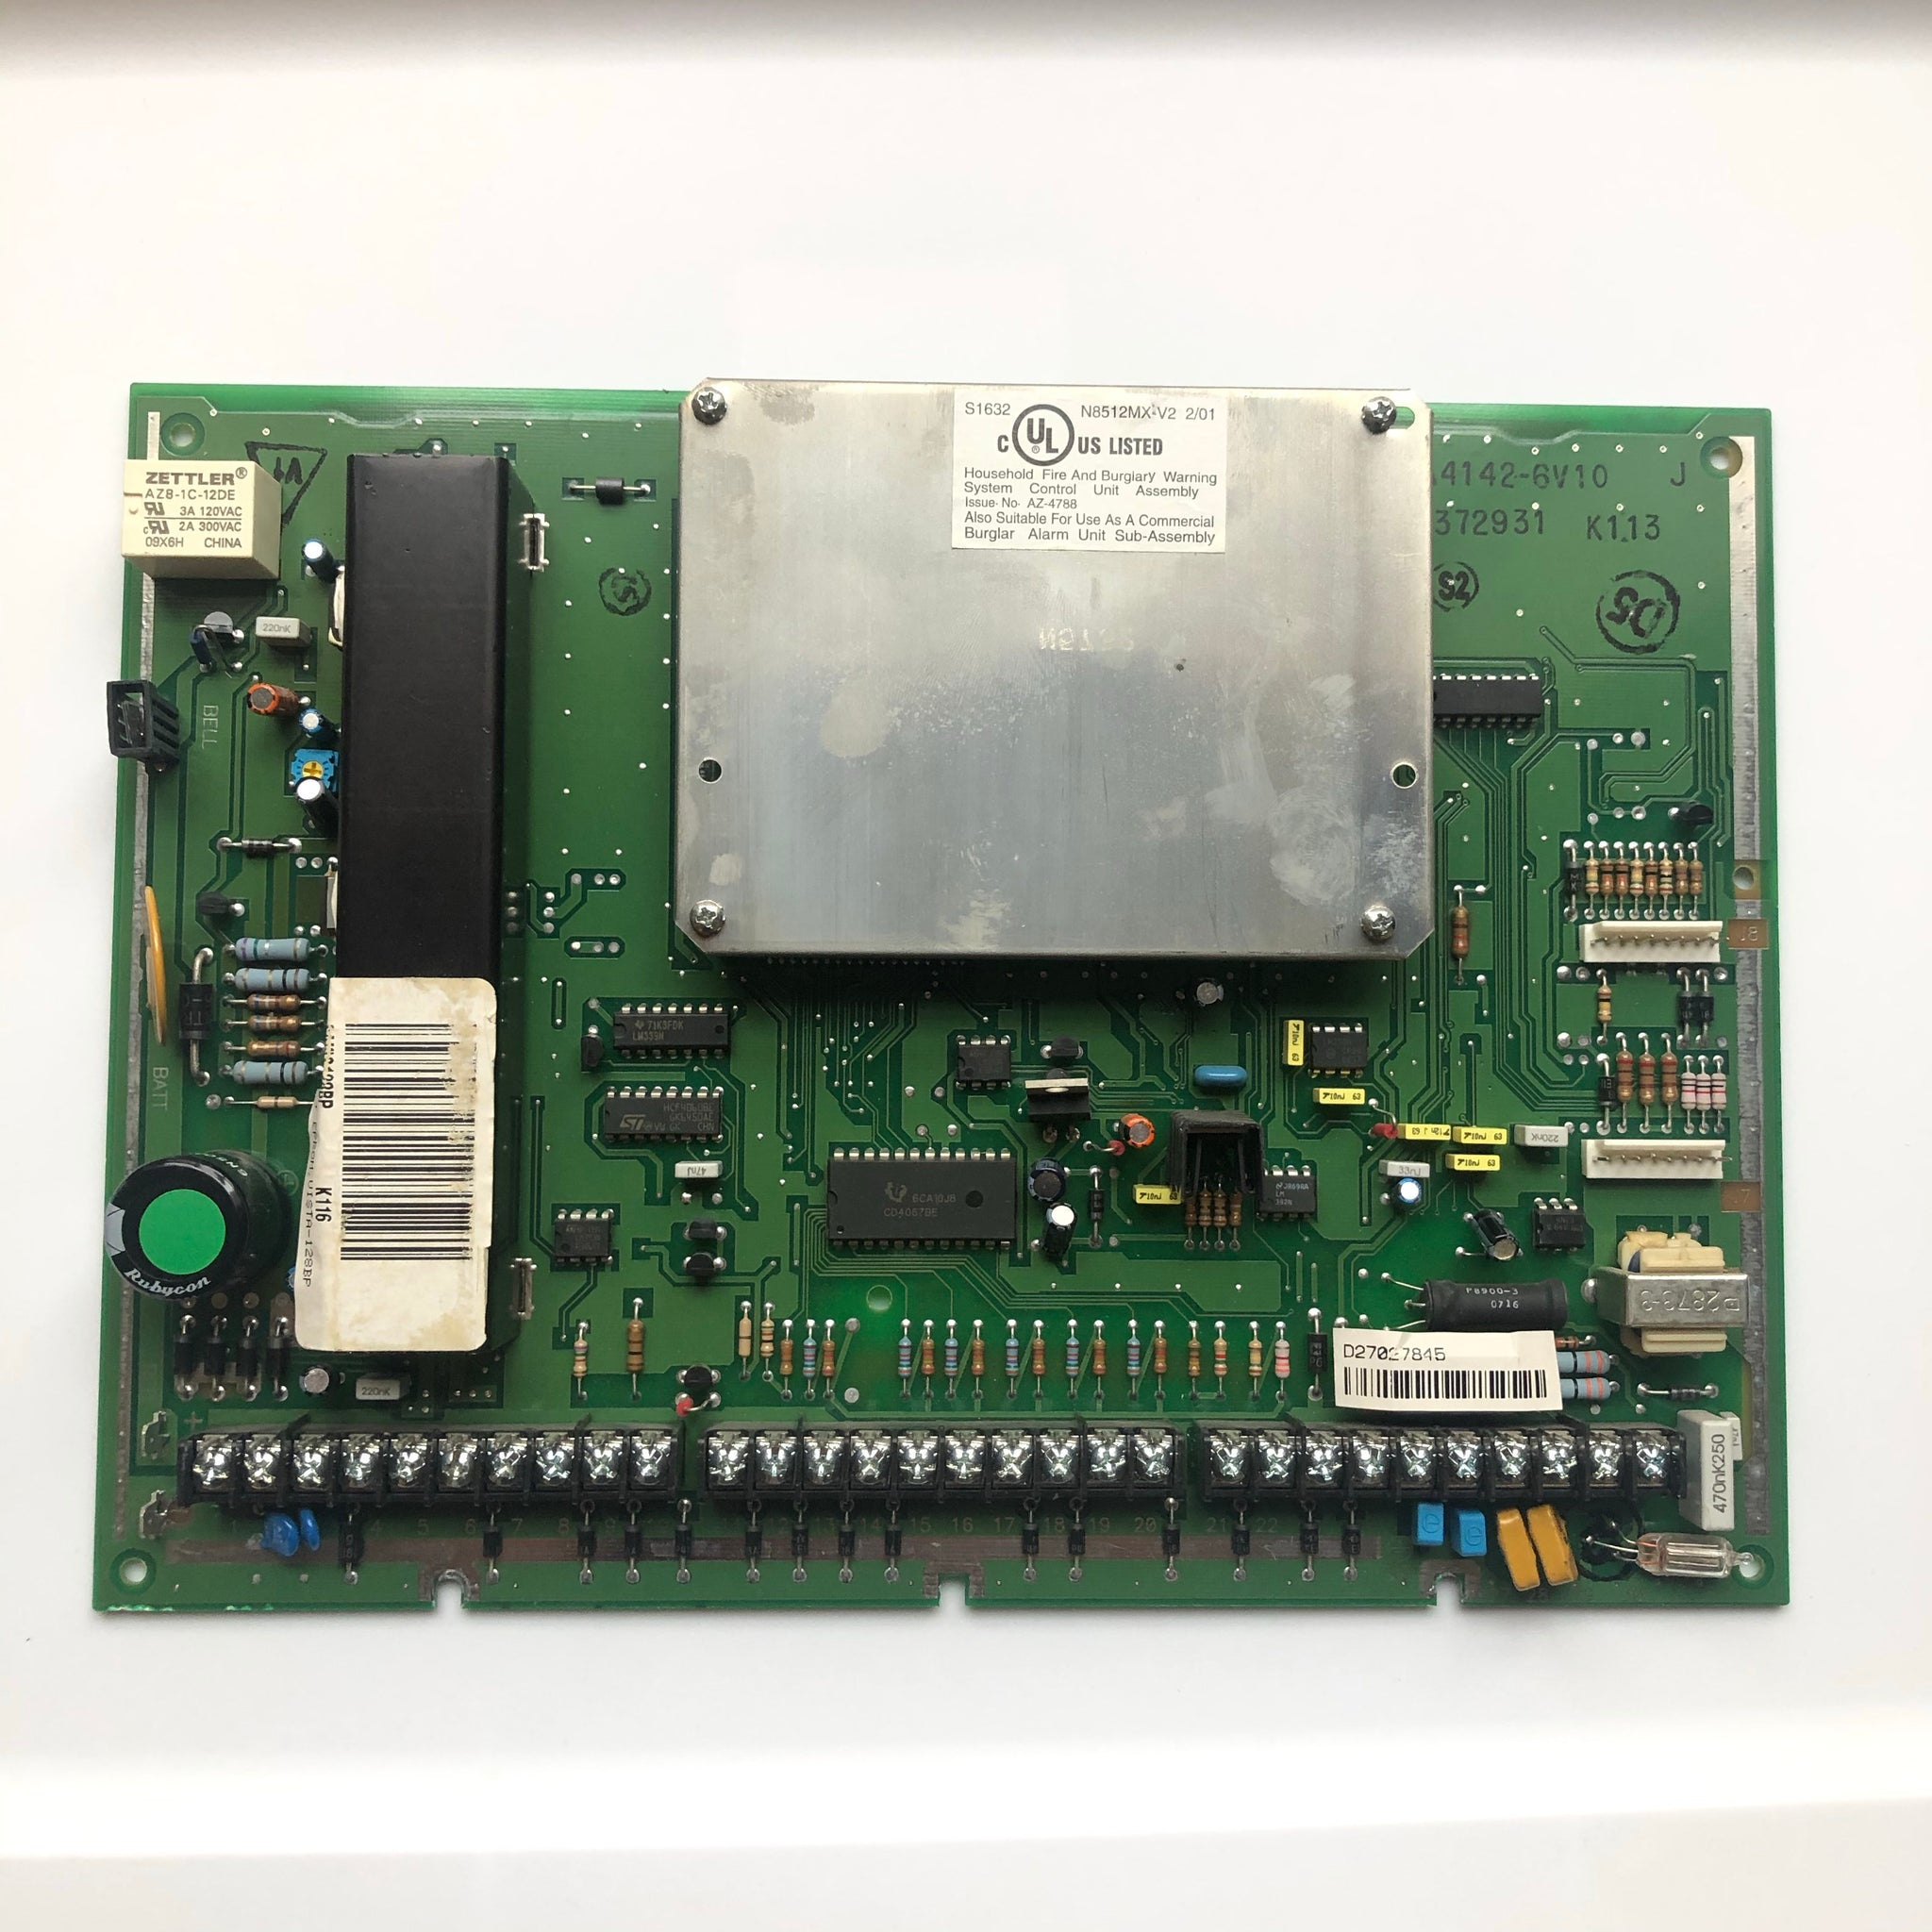 Honeywell N8512MX-V2 Board